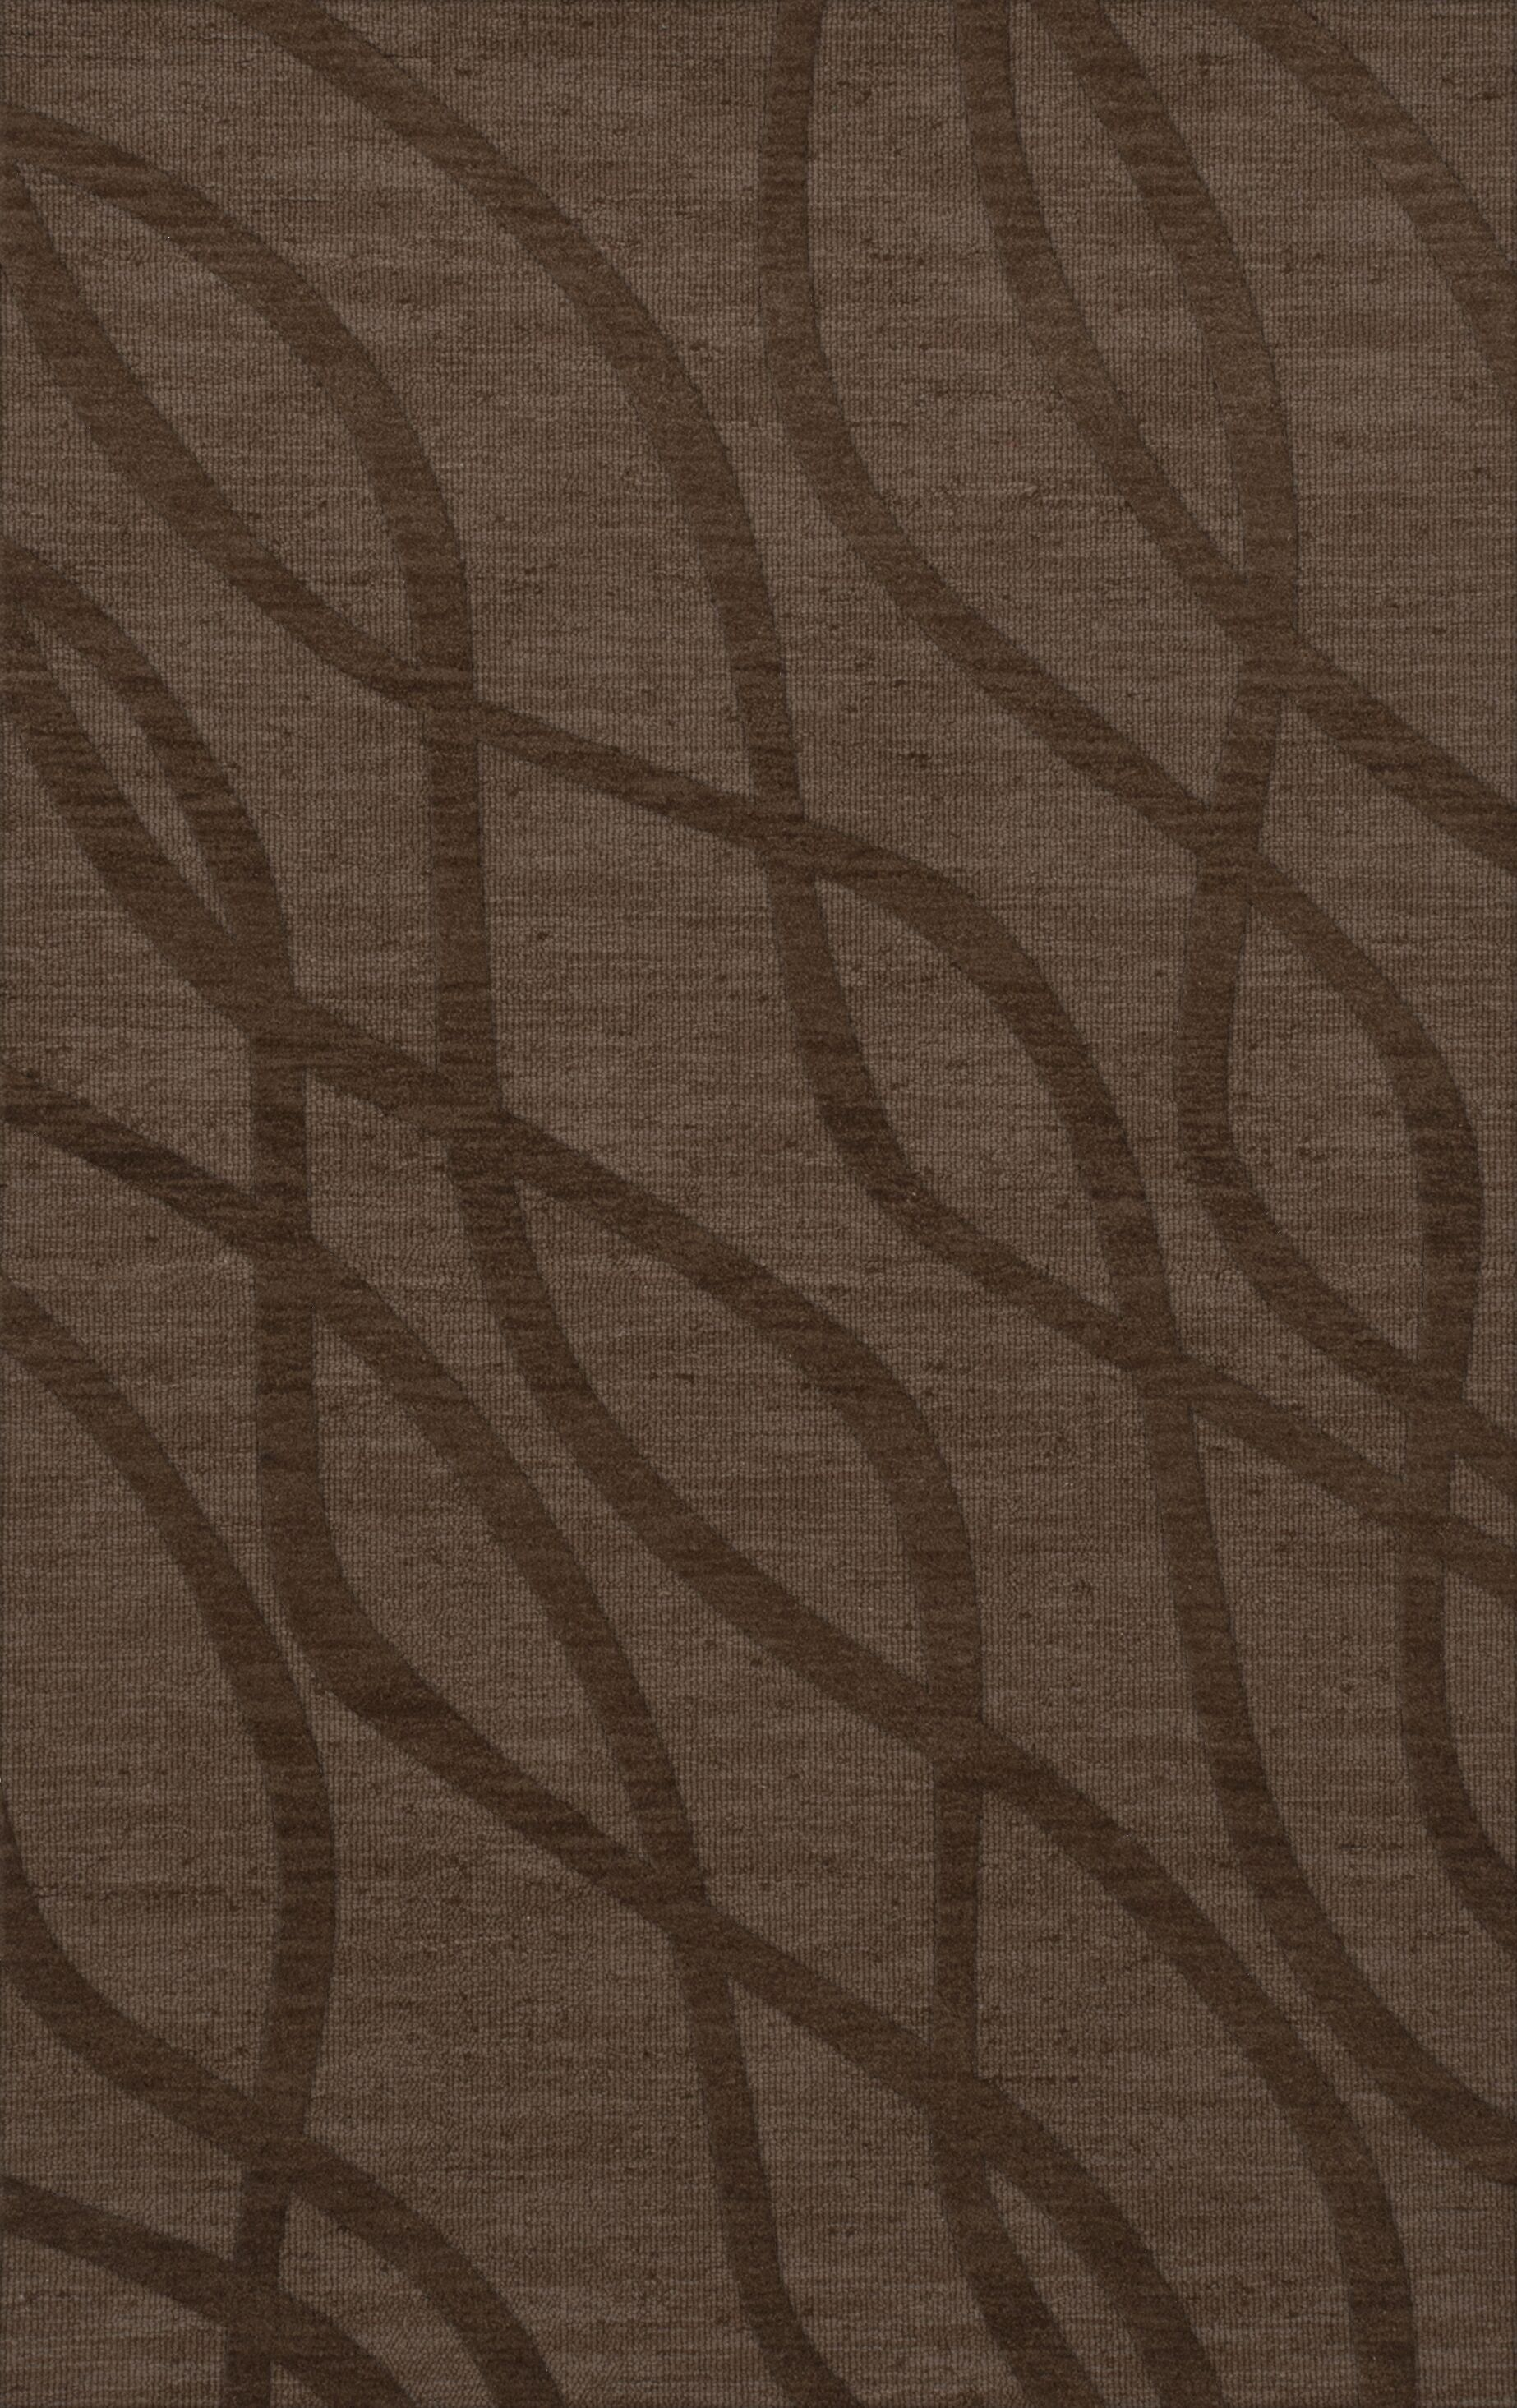 Dover Tufted Wool Mocha Area Rug Rug Size: Rectangle 10' x 14'